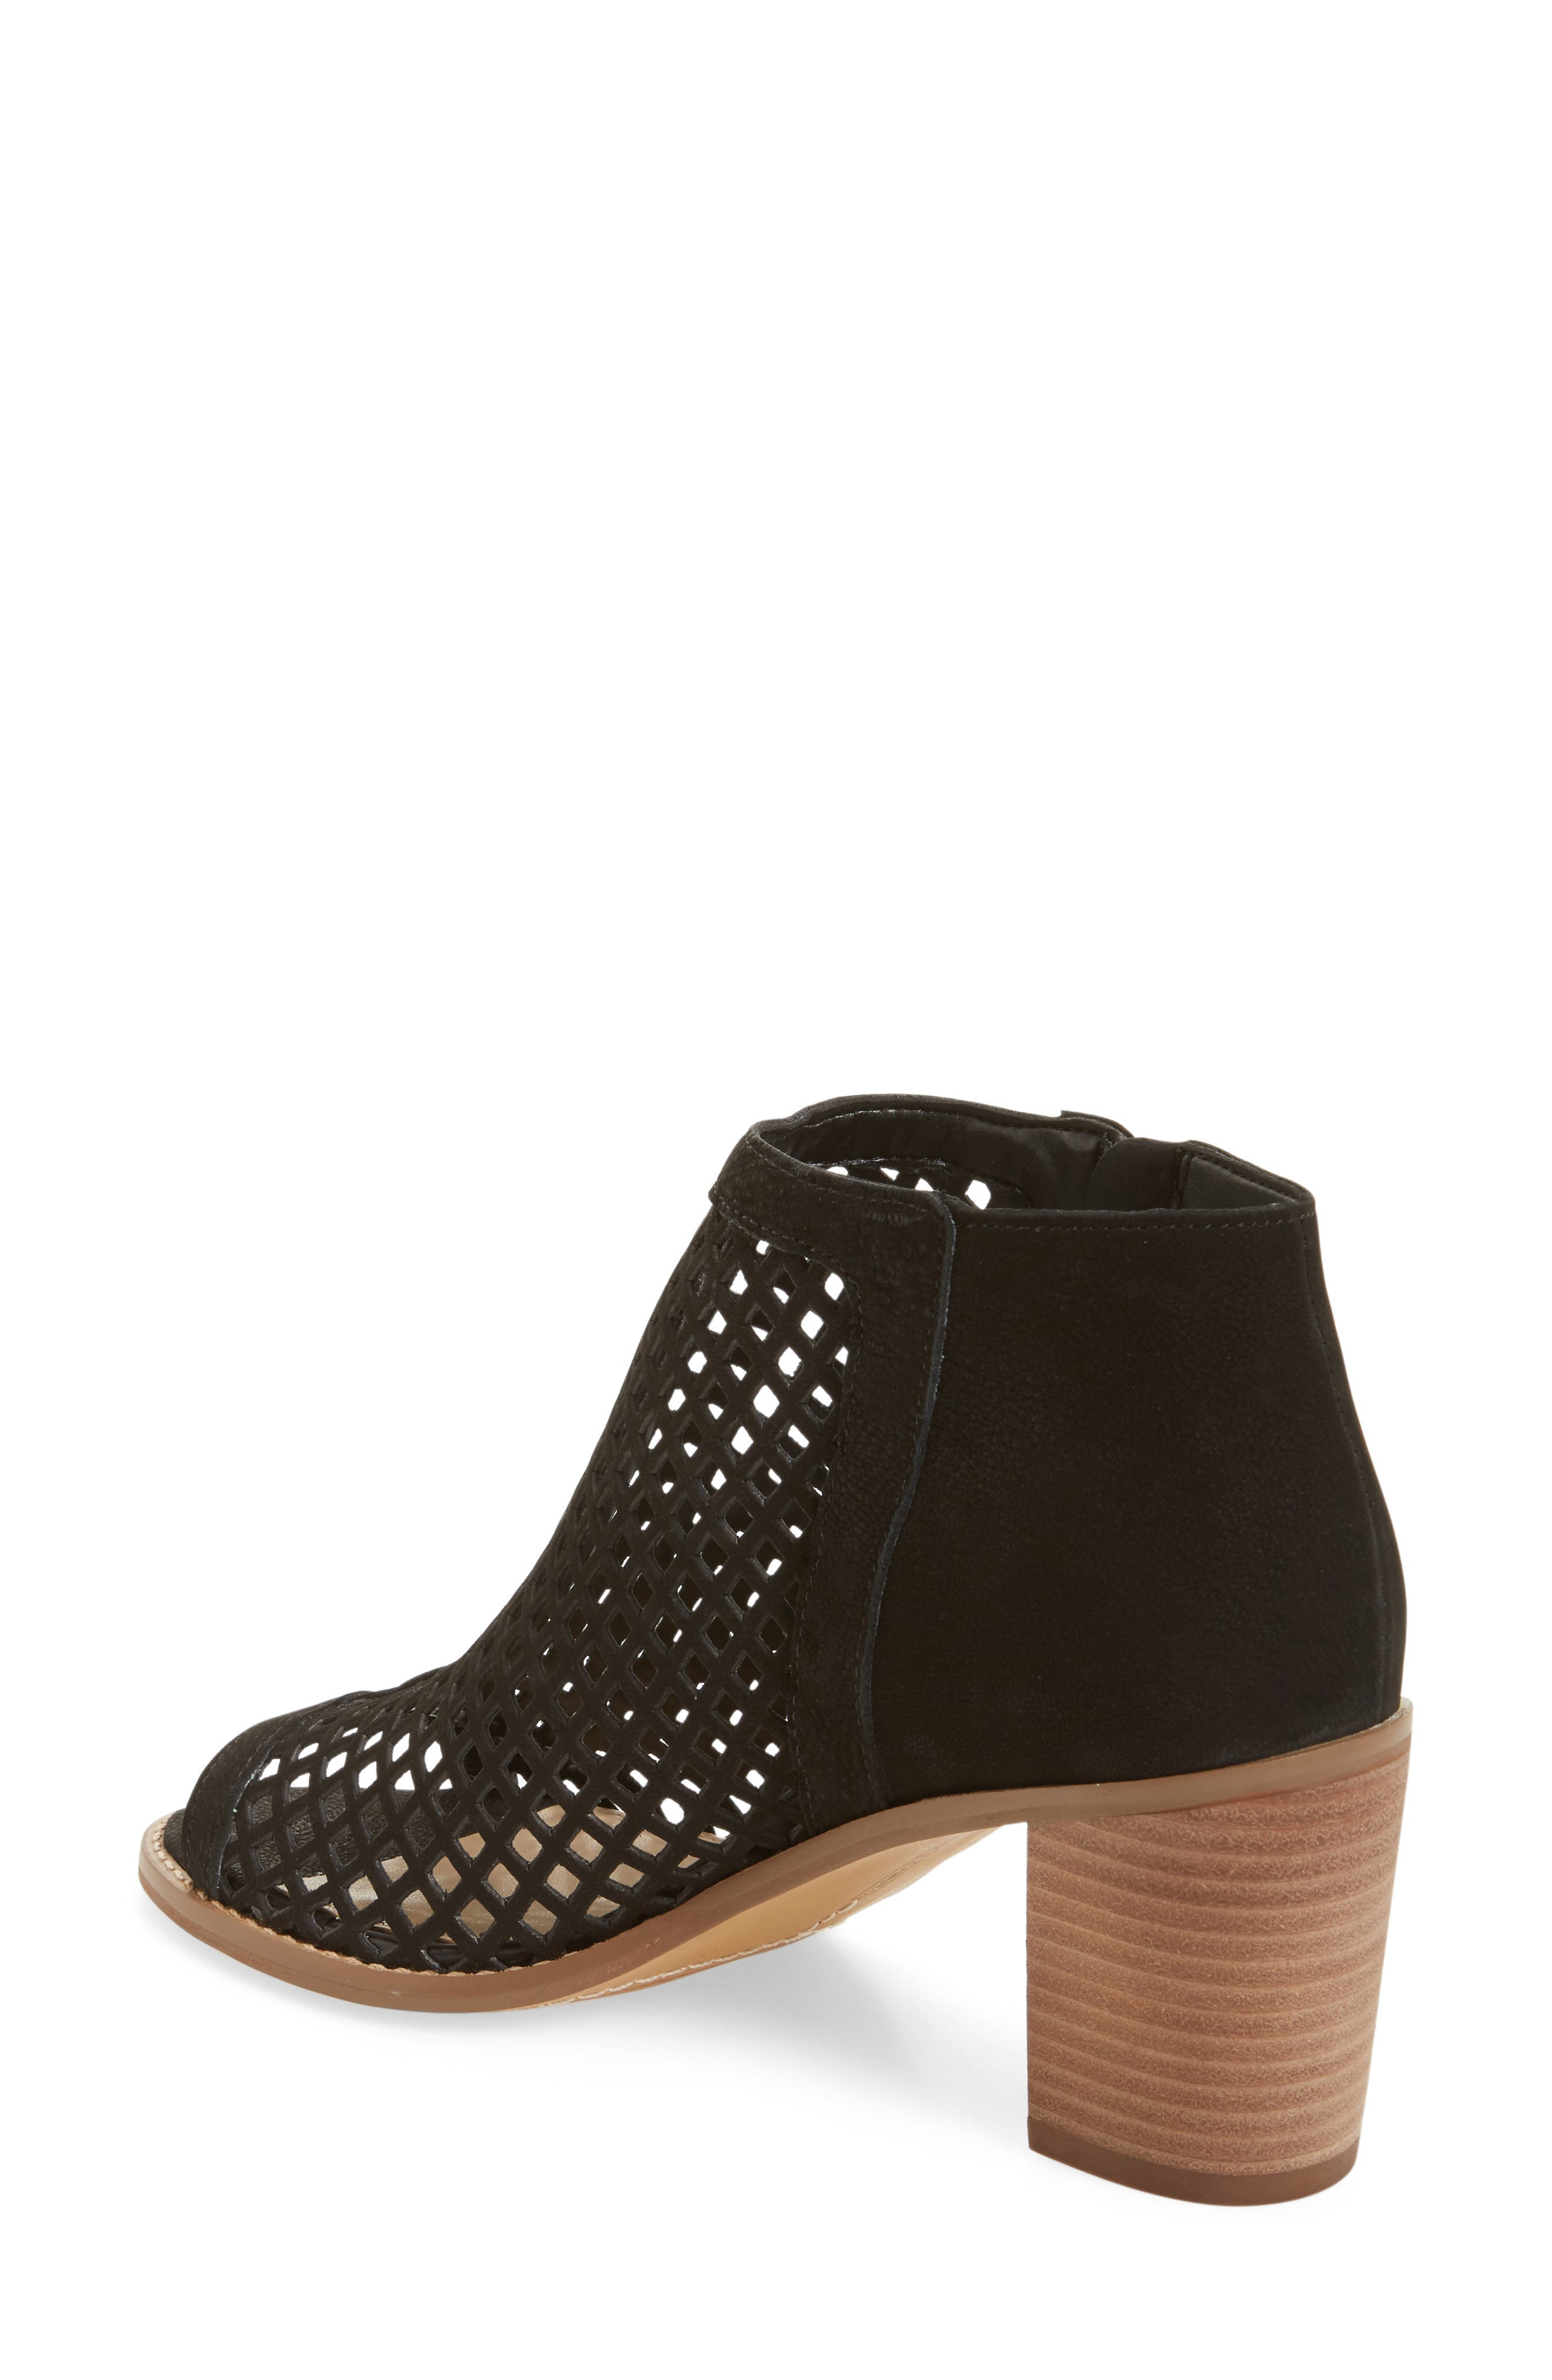 Tresin Perforated Open-Toe Bootie,                             Alternate thumbnail 2, color,                             001